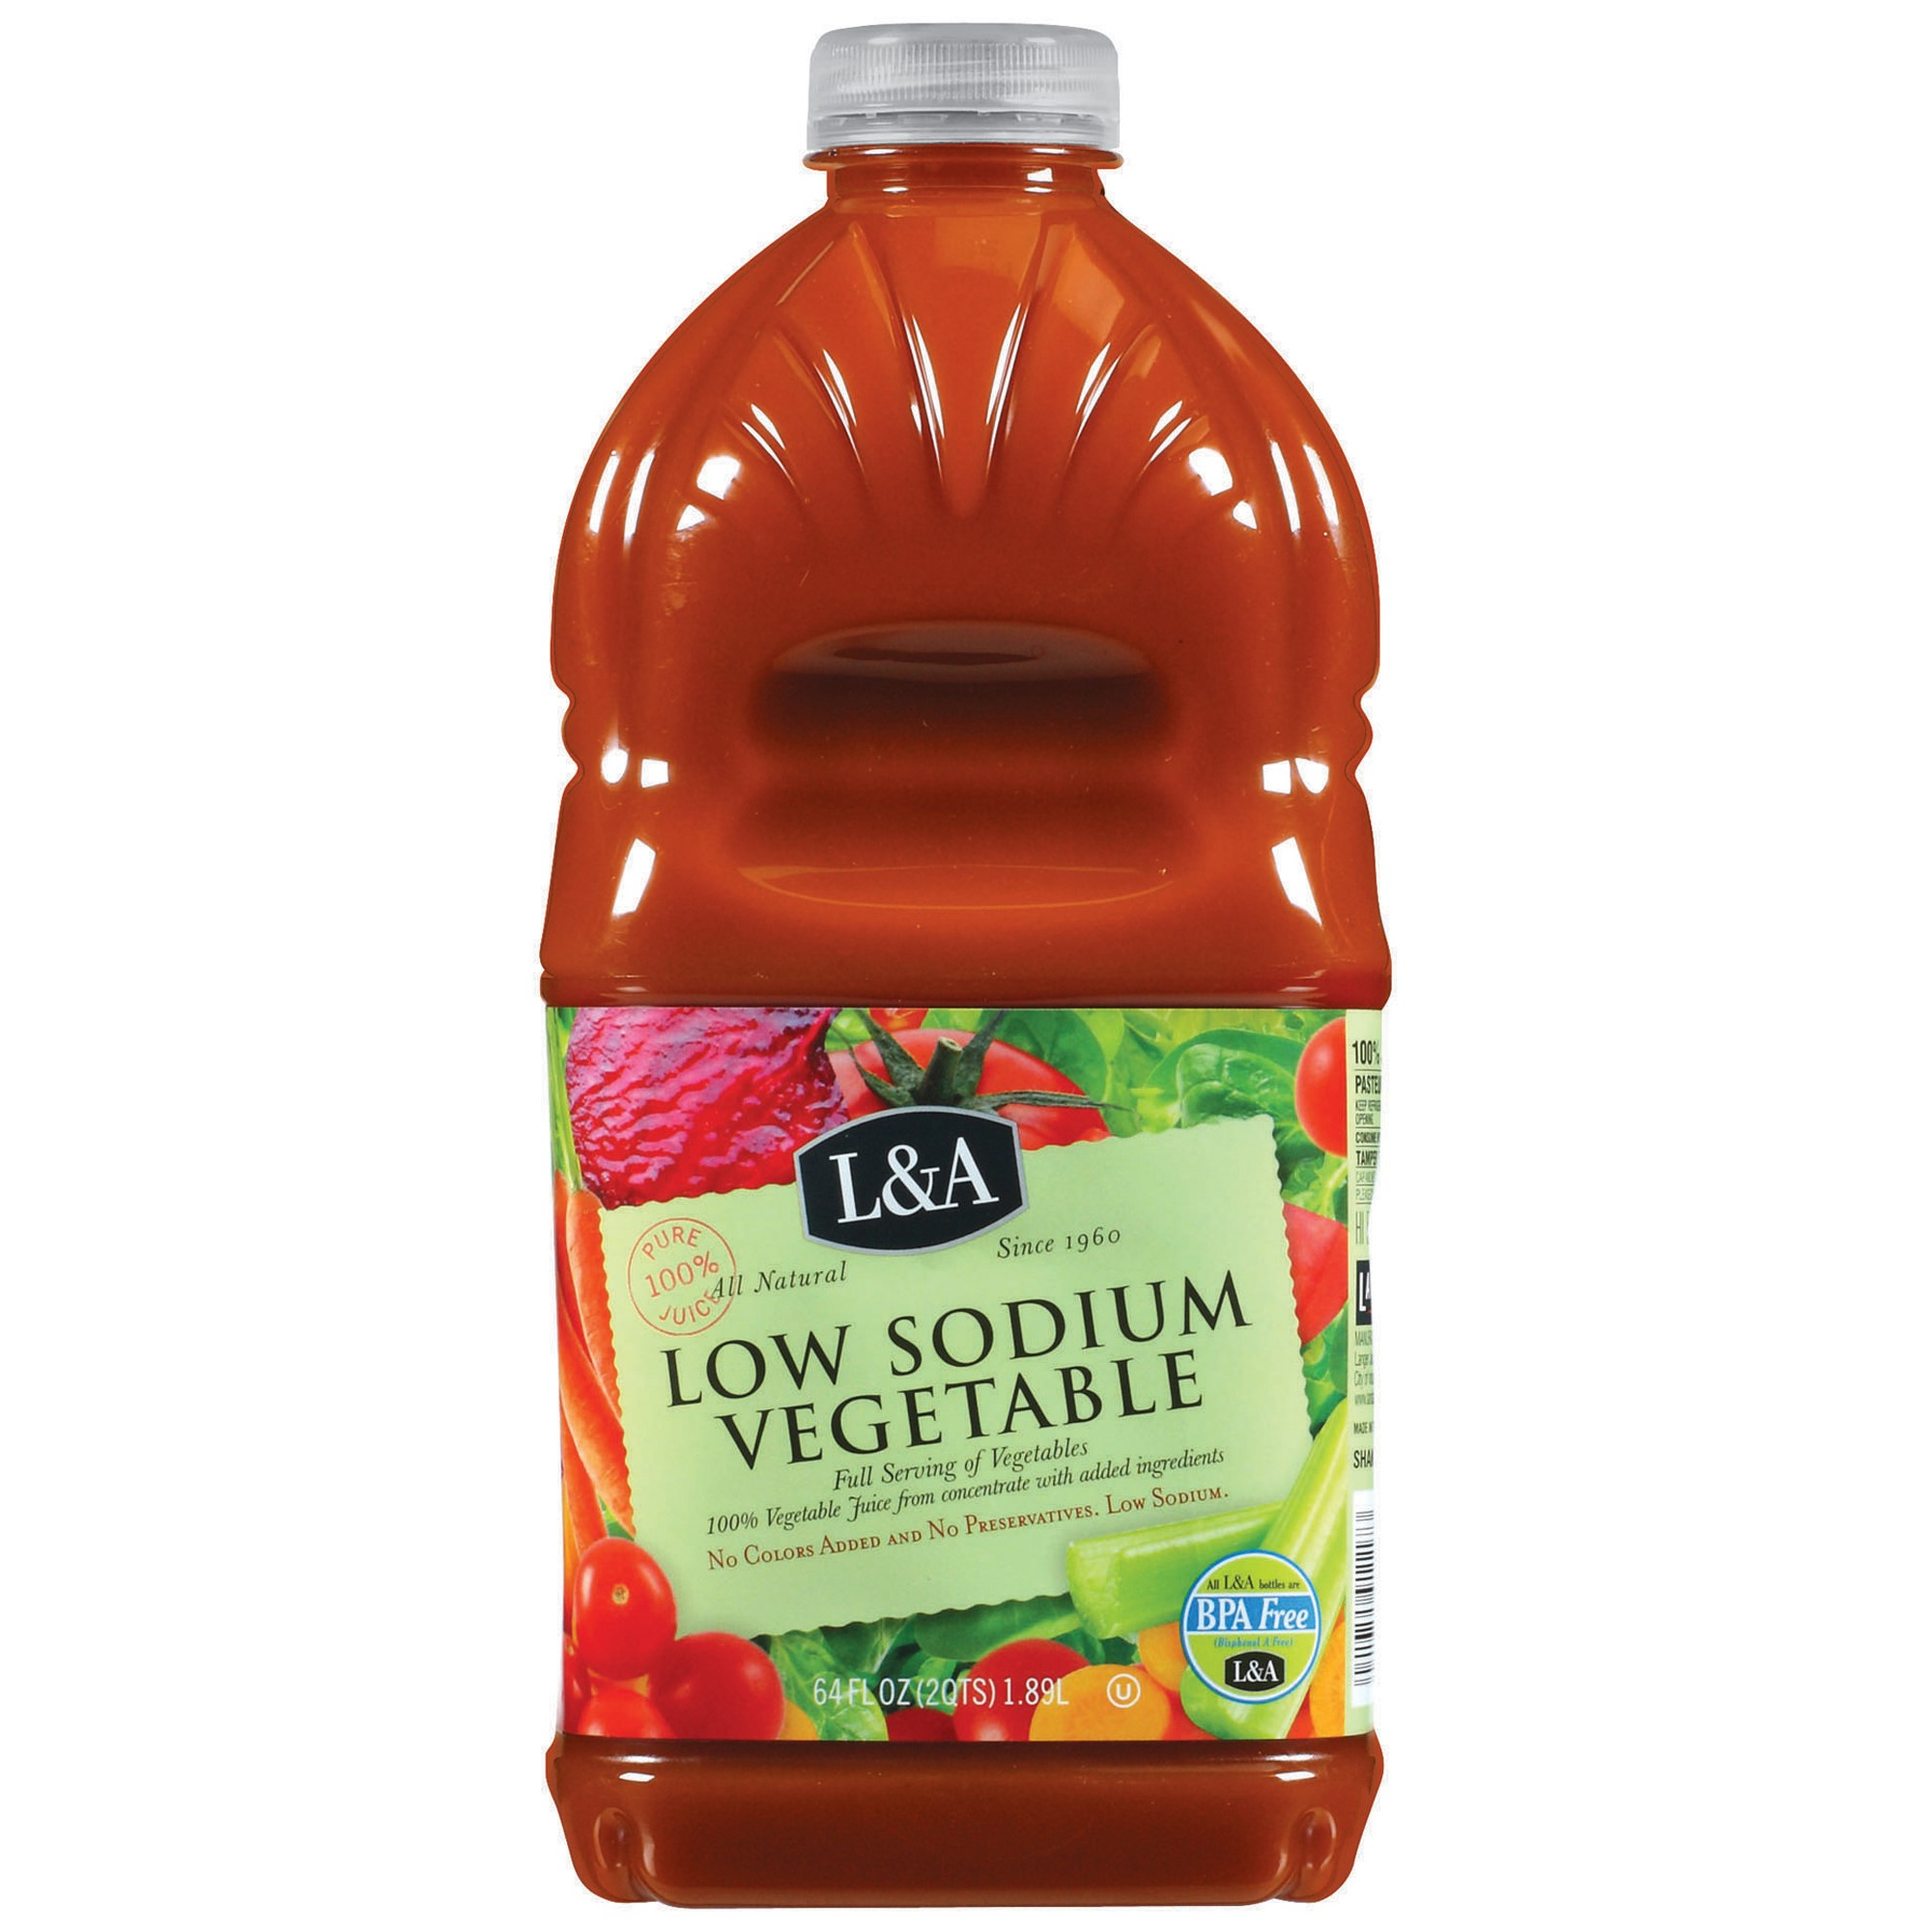 (8 Pack) L&A 100% Juice, Low Sodium Vegetable, 64 Fl Oz, 1 Count